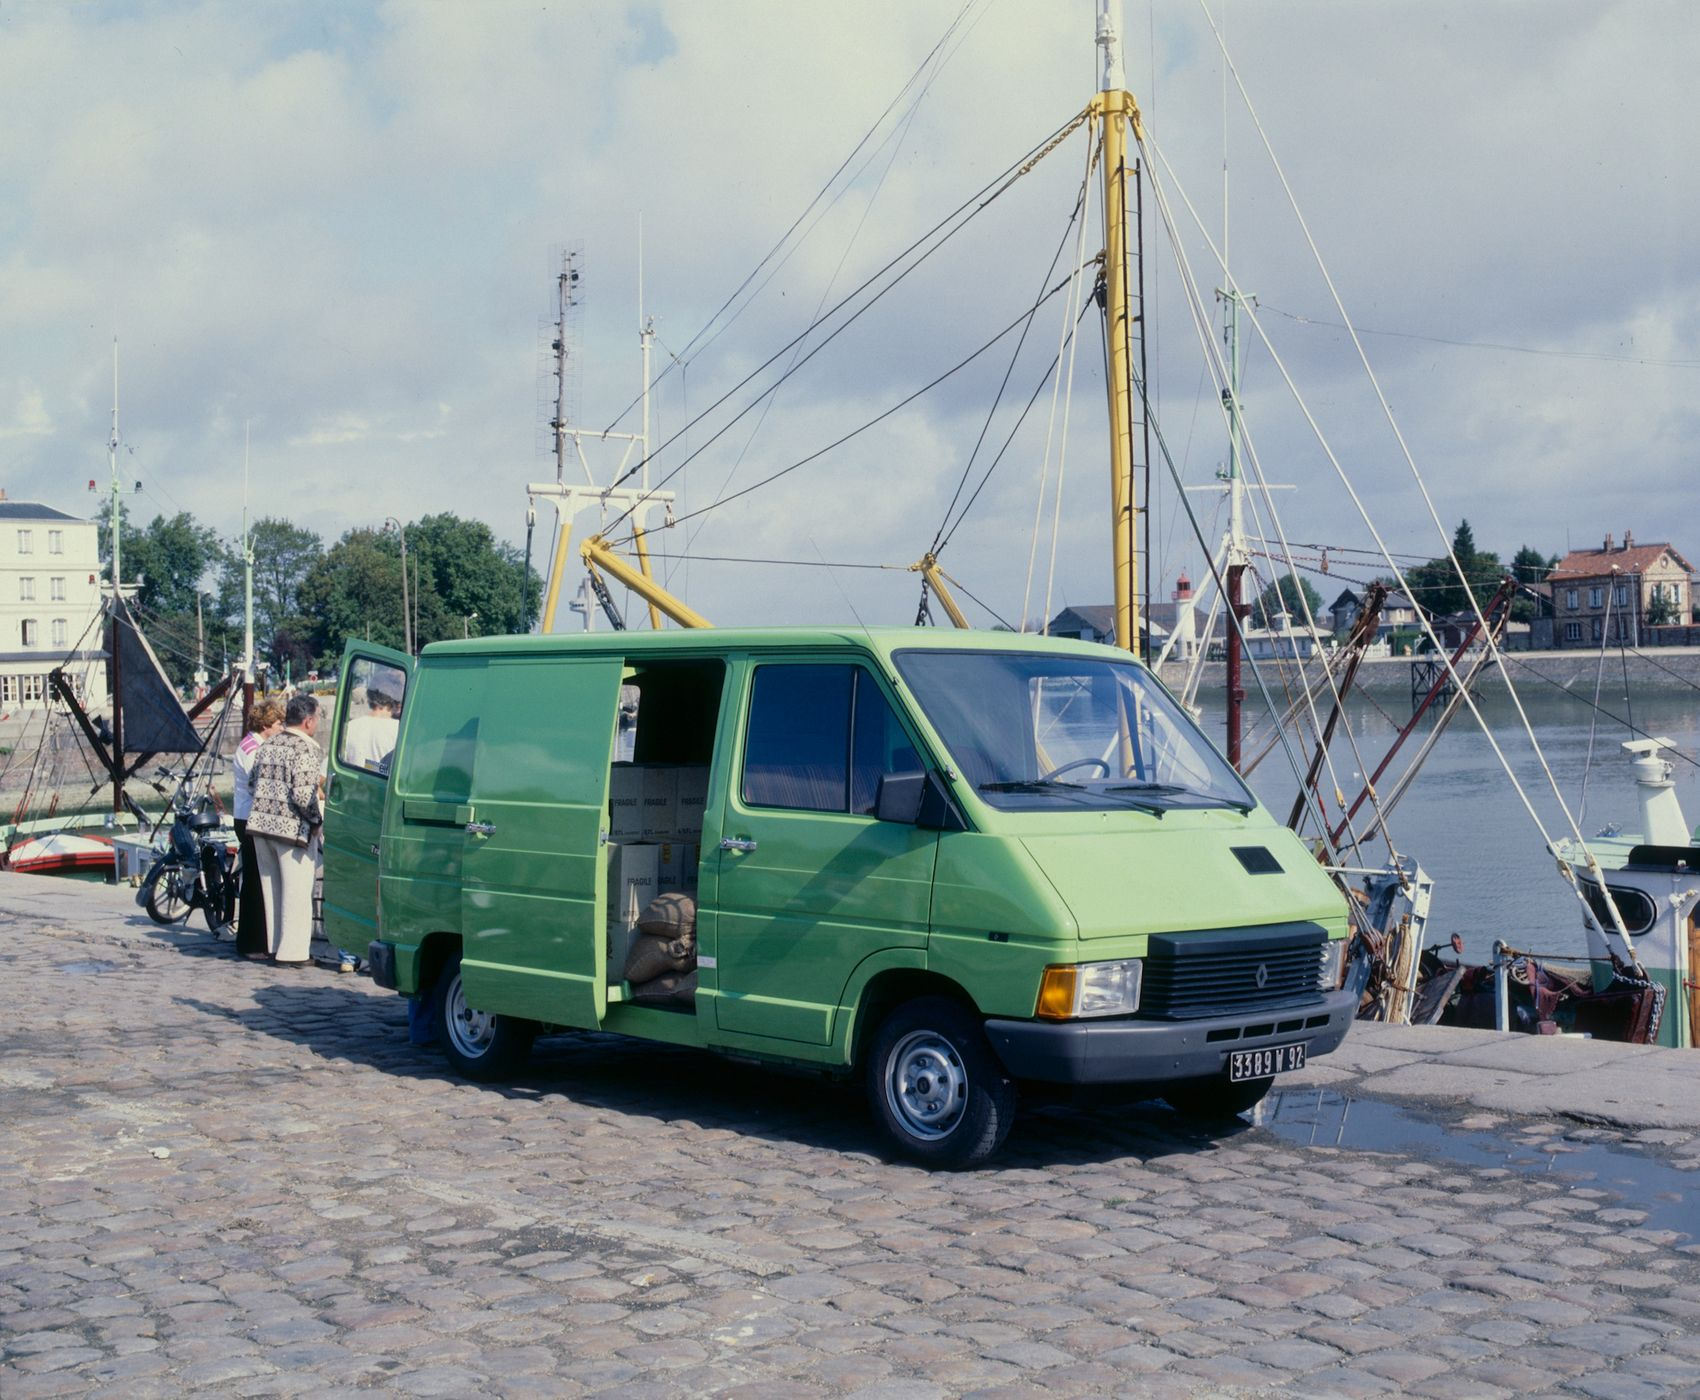 2020 - 40 years of Renault TRAFIC_low